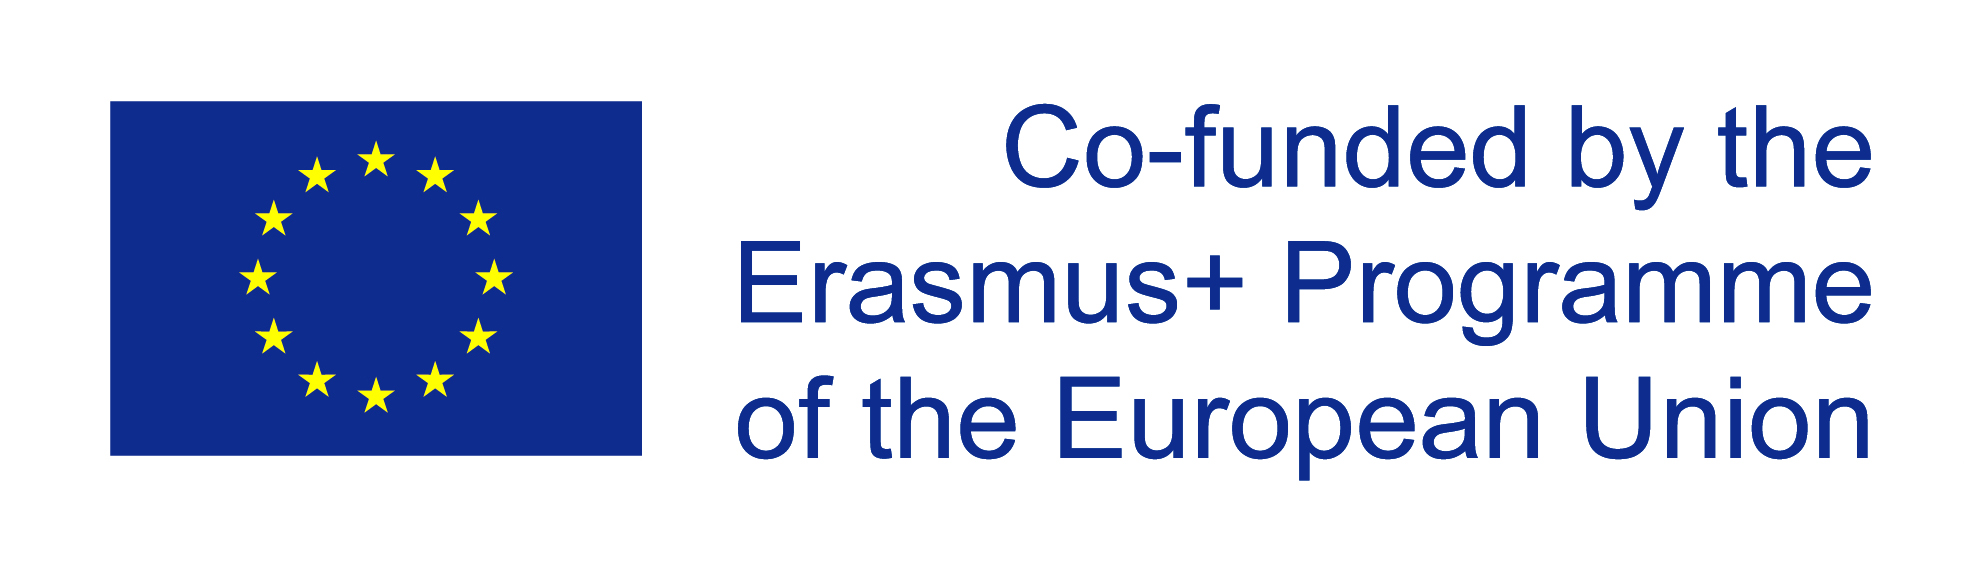 Onboard Erasmus European Union